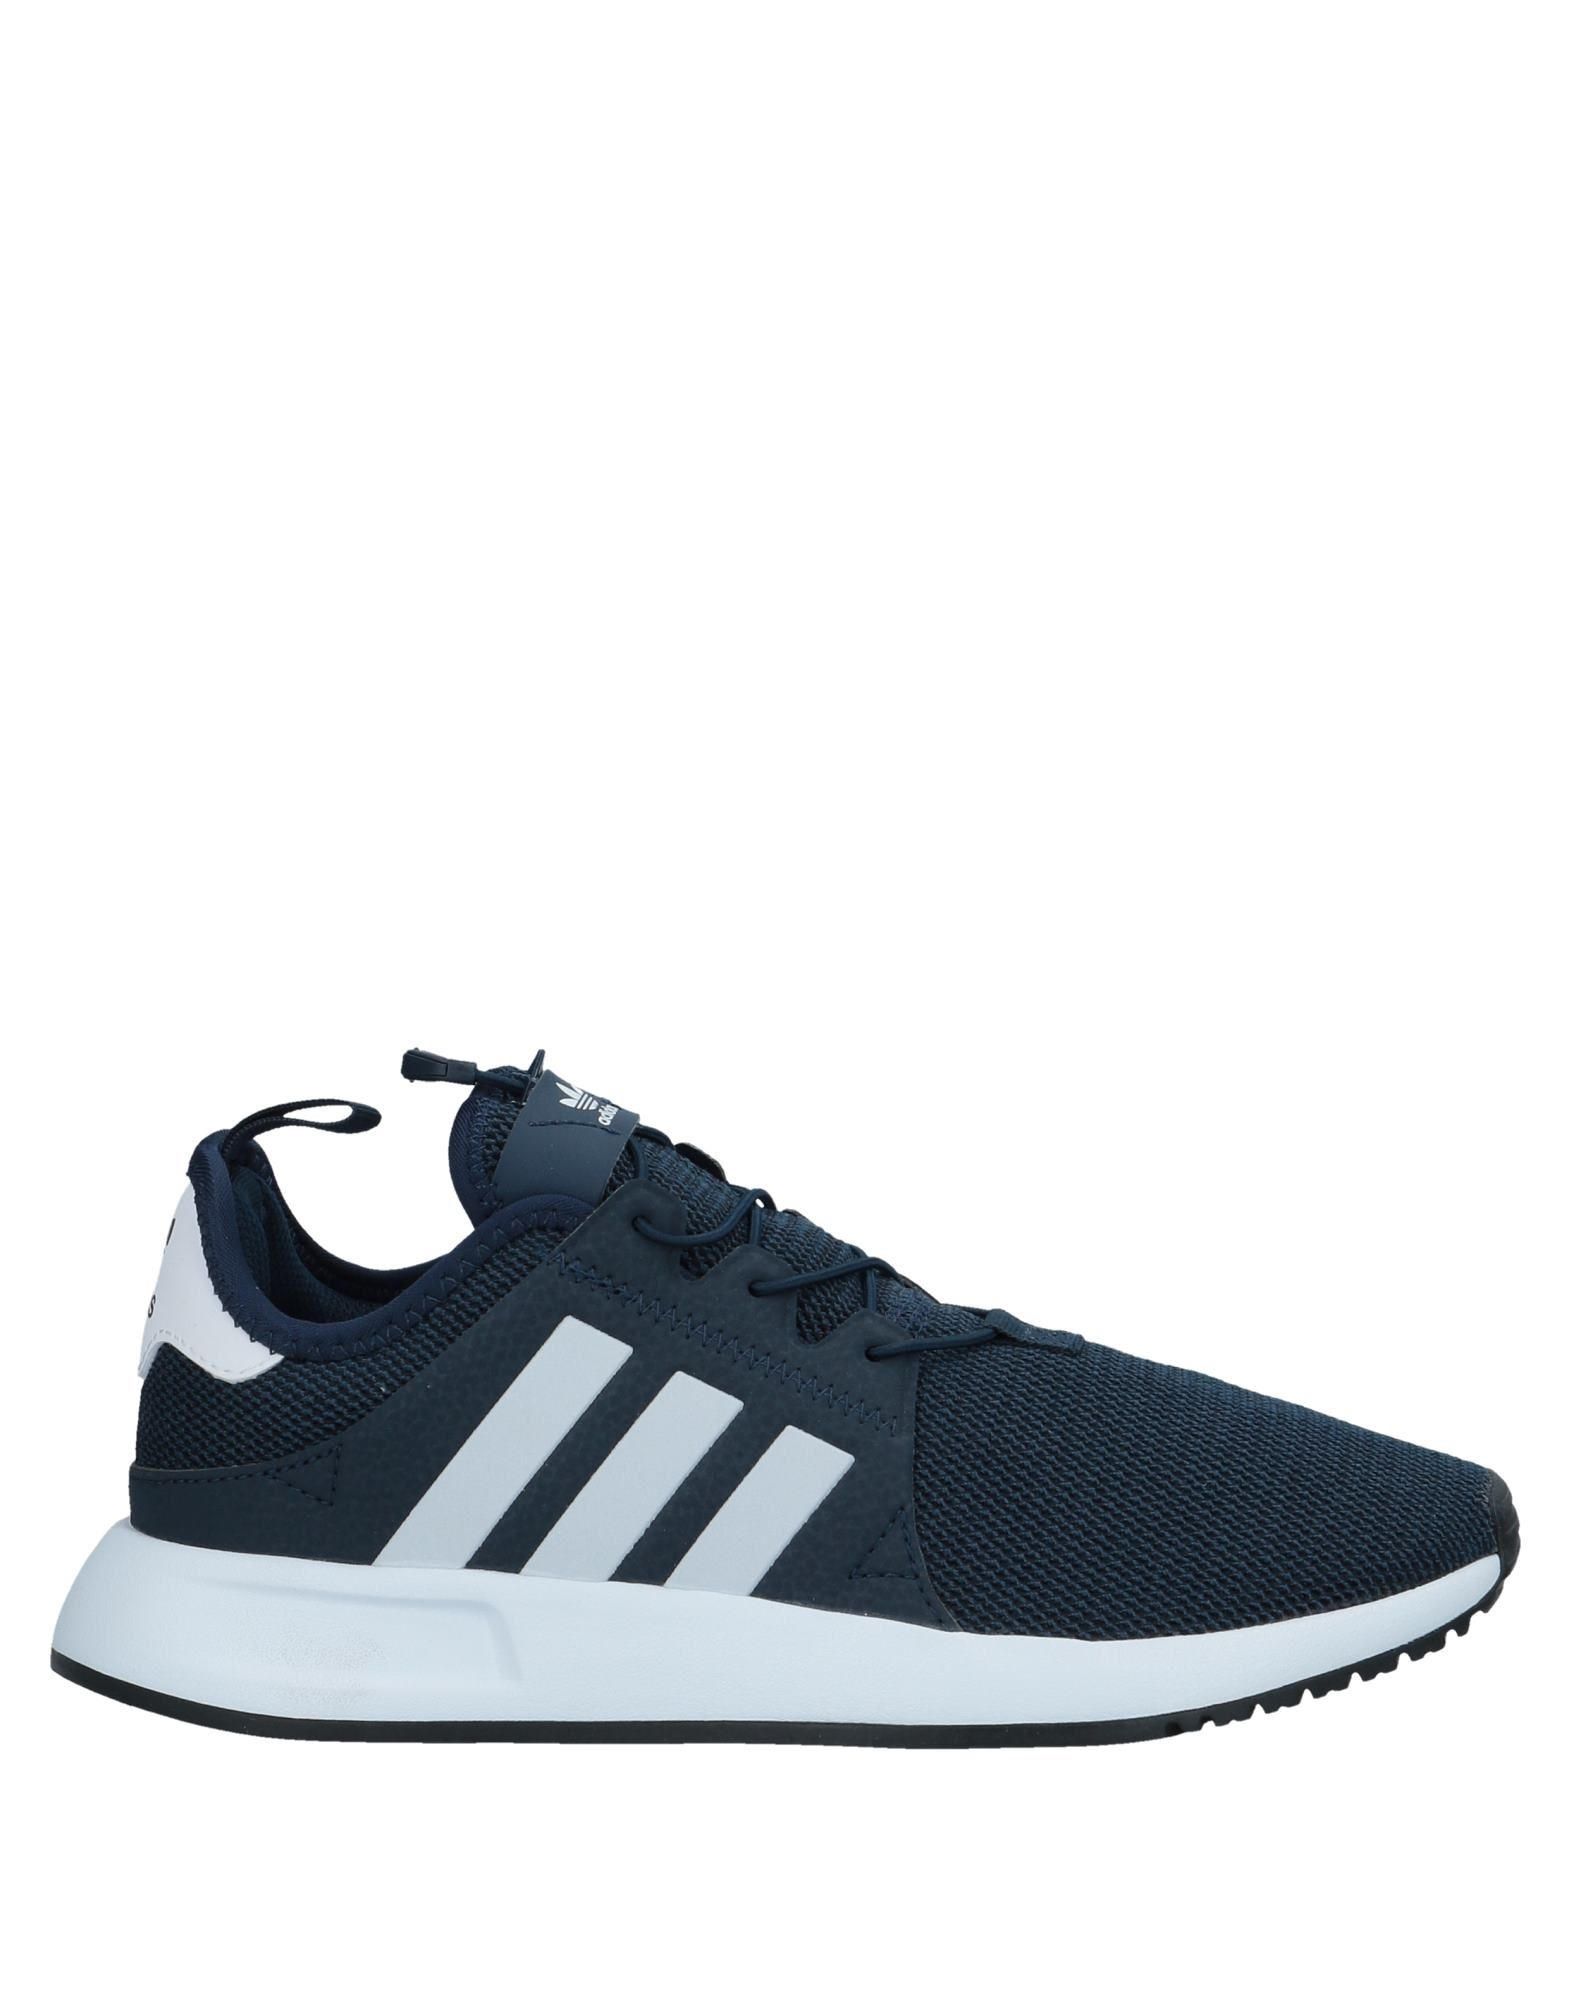 Sneakers Adidas Originals Donna - 11532188XP